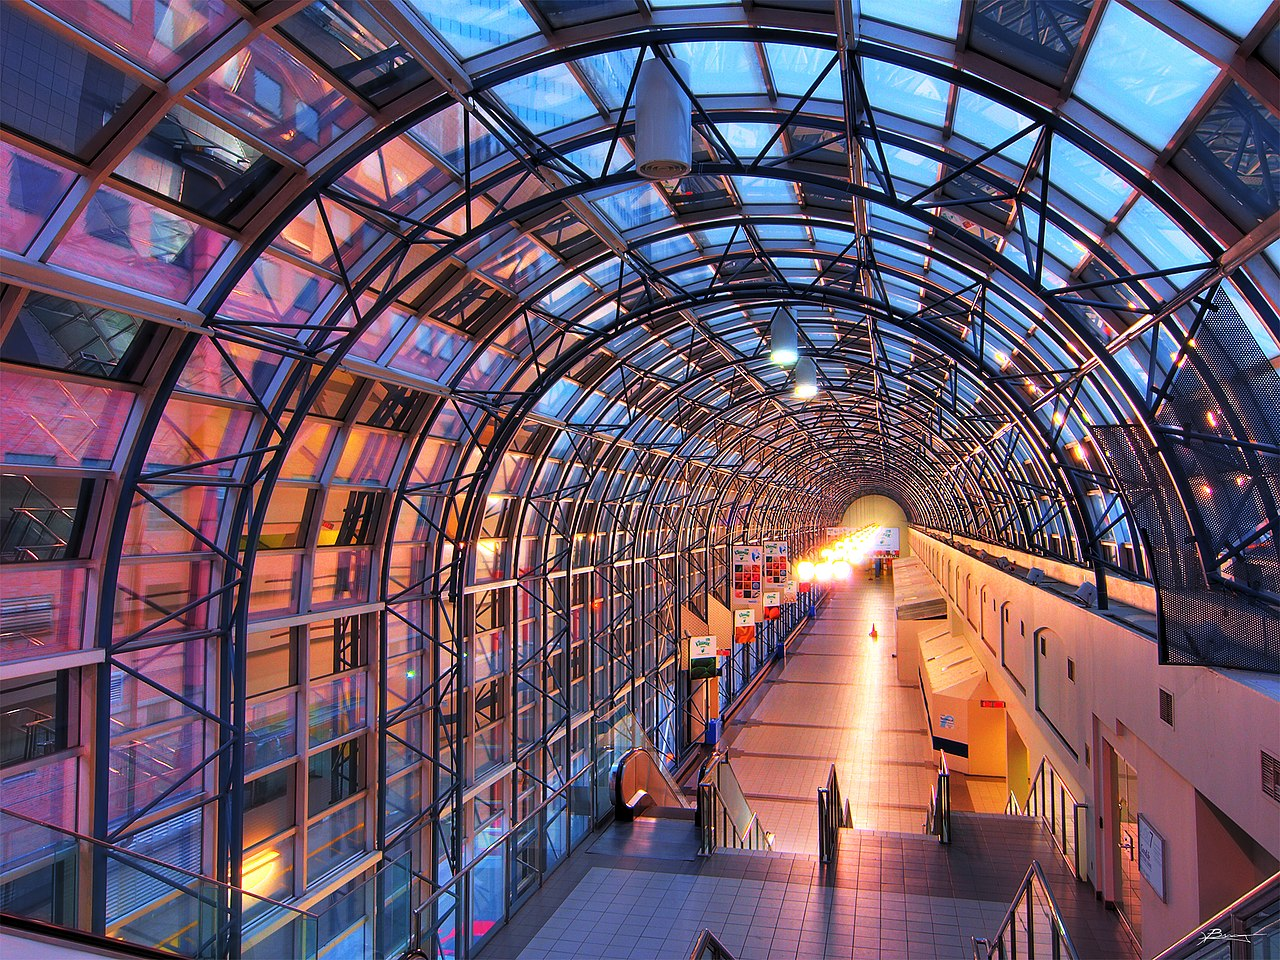 The Skywalk links Union Station to the Rogers Centre (Image Credit: Skeezix1000, Wikimedia)